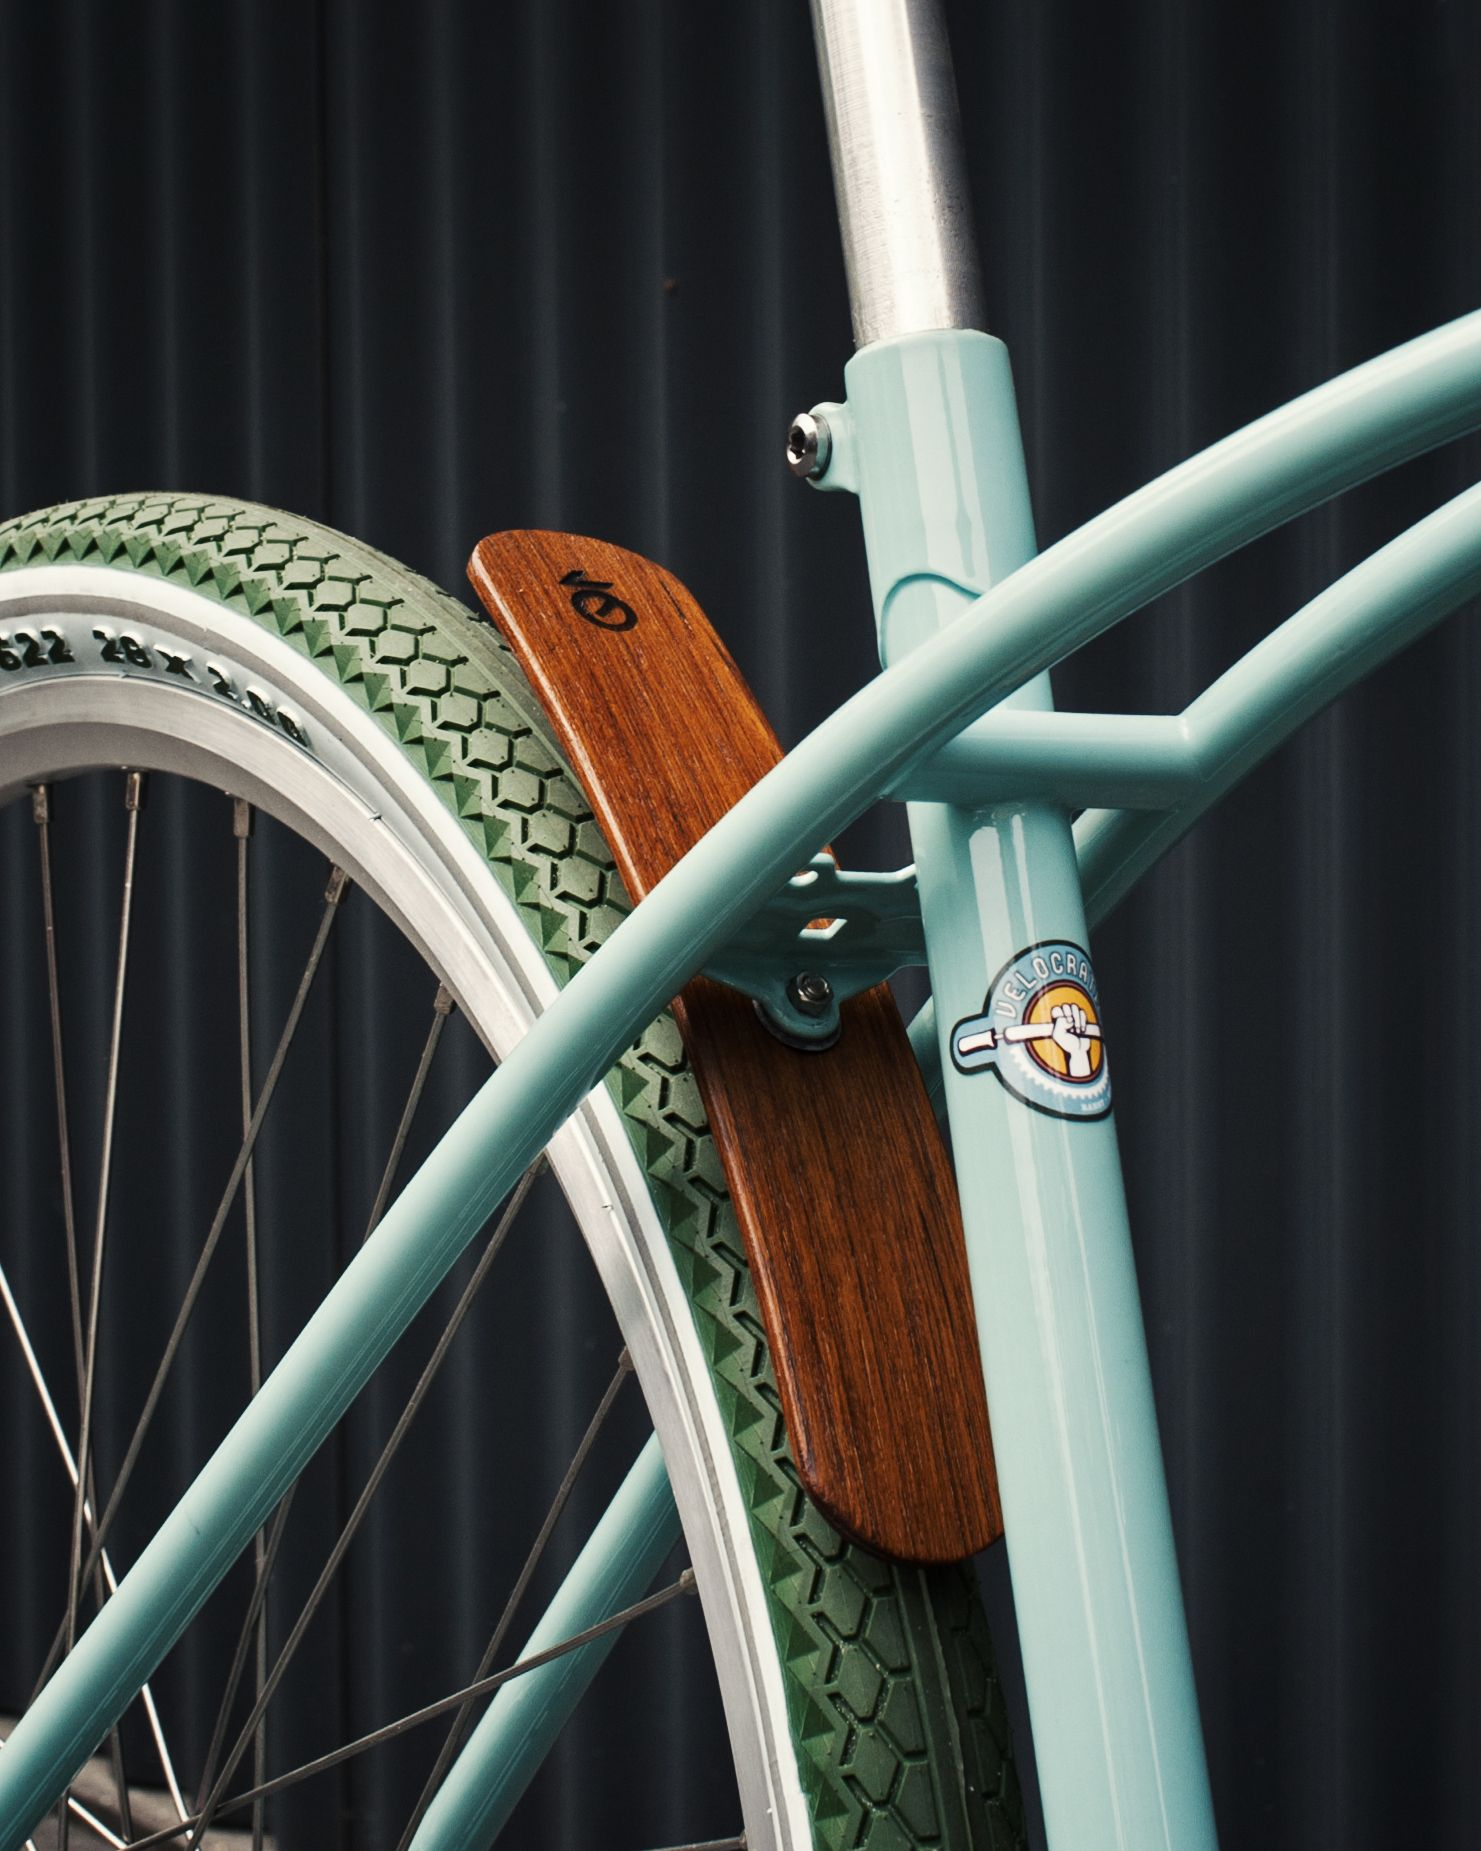 f6d8dd764f0 Our mini fenders are built to be seen. This subtle wooden detail will turn  heads wherever your ride takes you. Choose Short 'n Sweet (42mm) for city  bikes ...